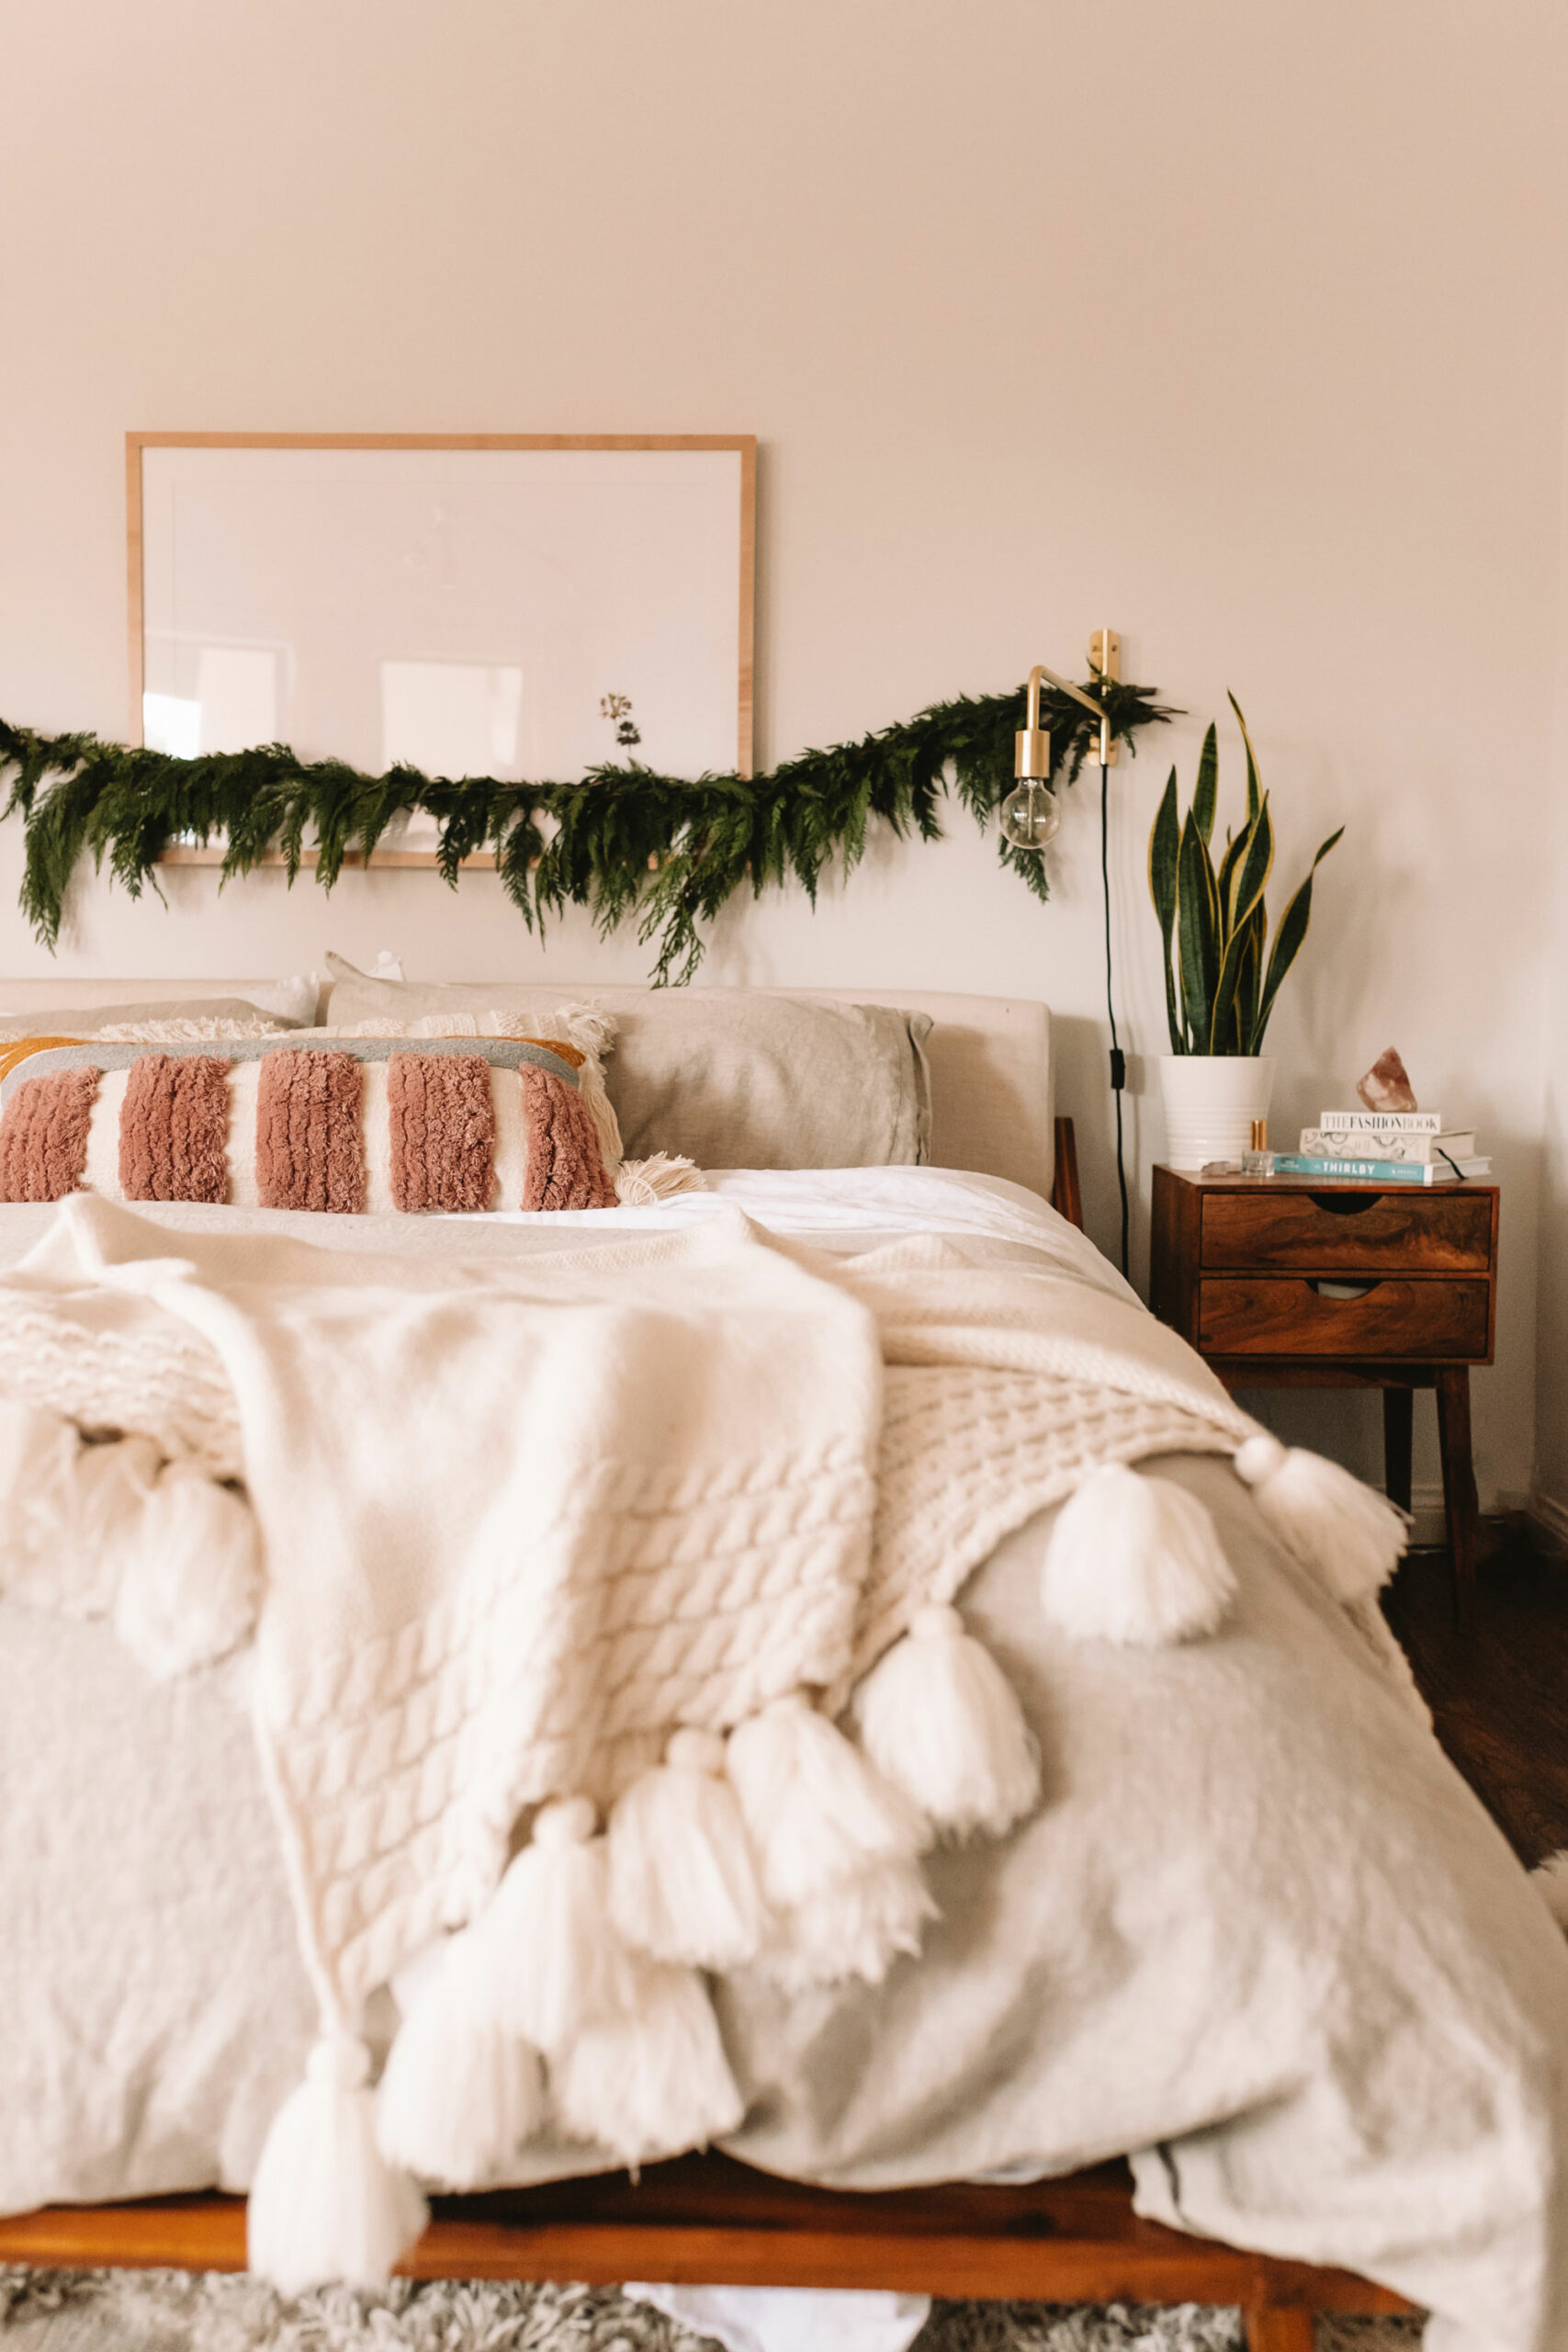 healthy sleep habits are about so much more than how many hours you're getting. setting a consistent nightly routine can make all the difference! #sleephabits #insomnia #newyearsgoals #2020 #bedroom